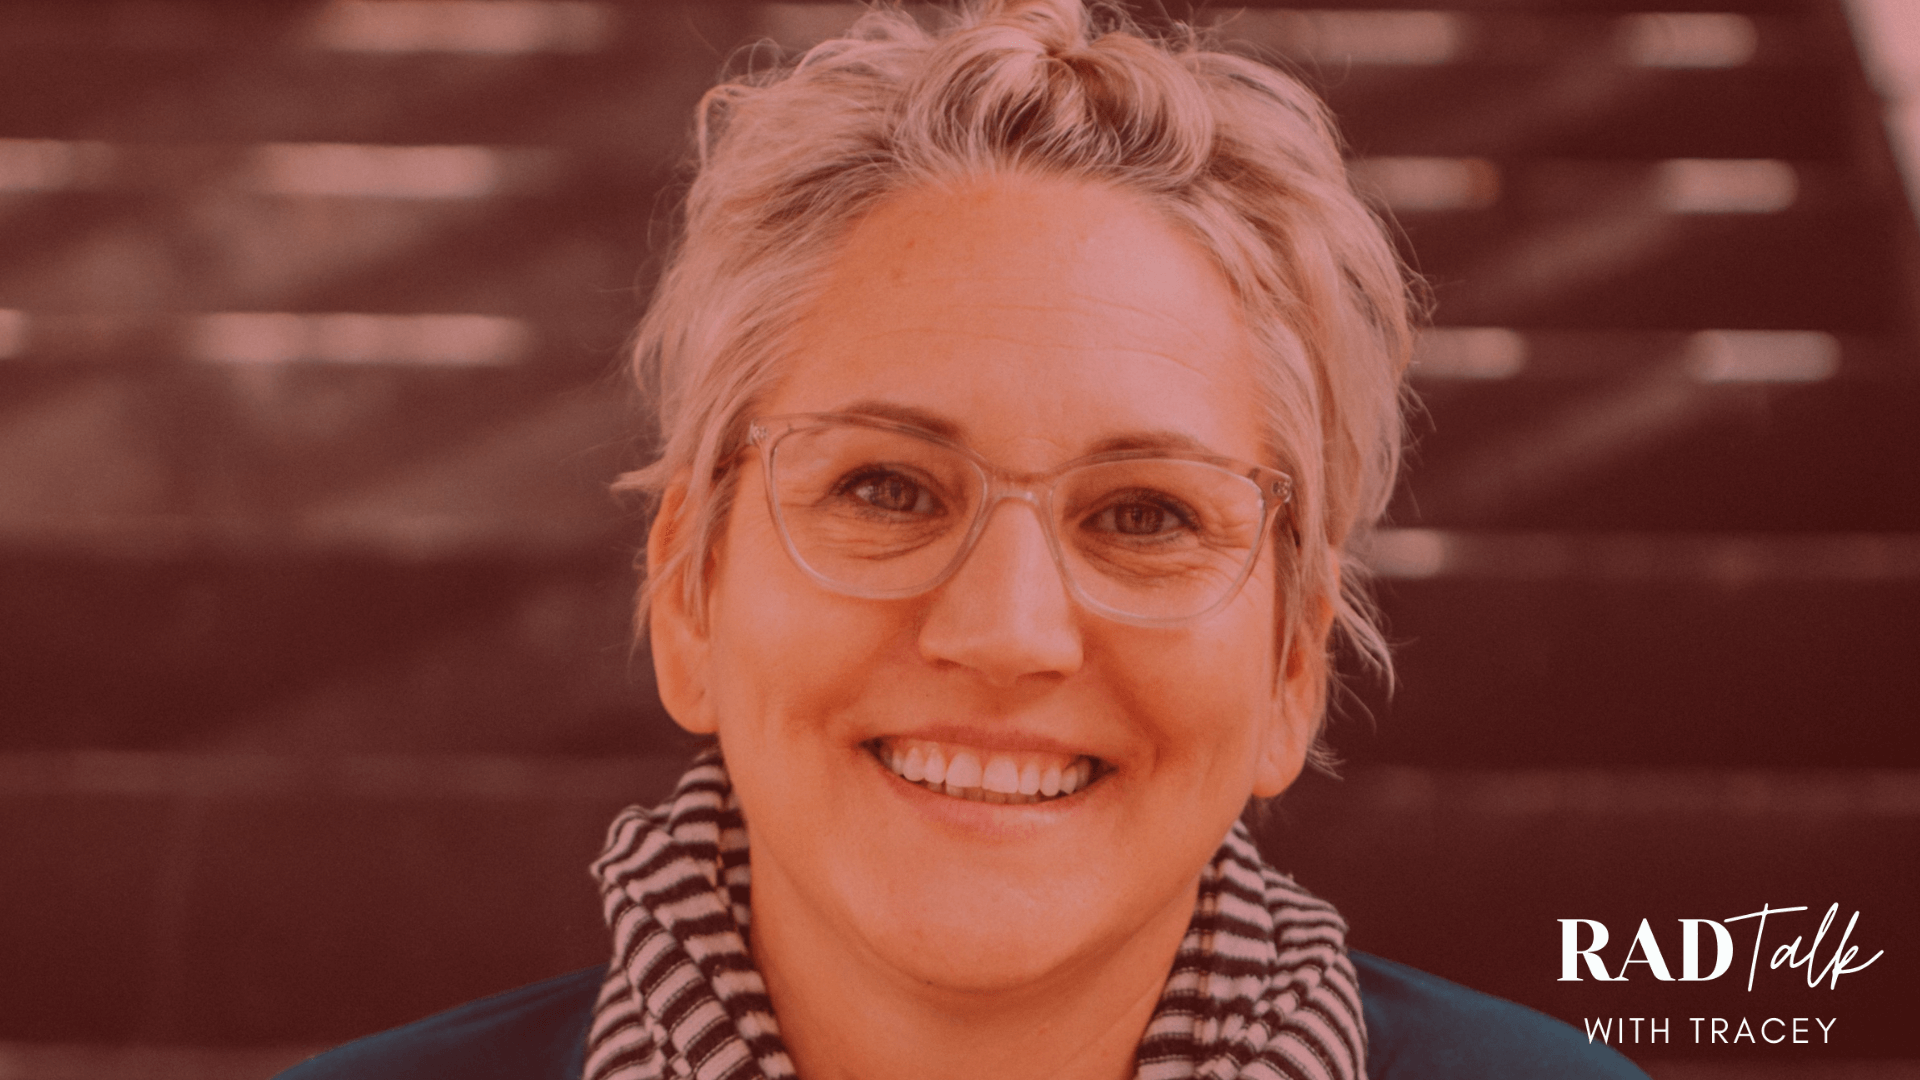 Ep. 82 with Tracey Poffenroth Prato from RAD Talk with Tracey